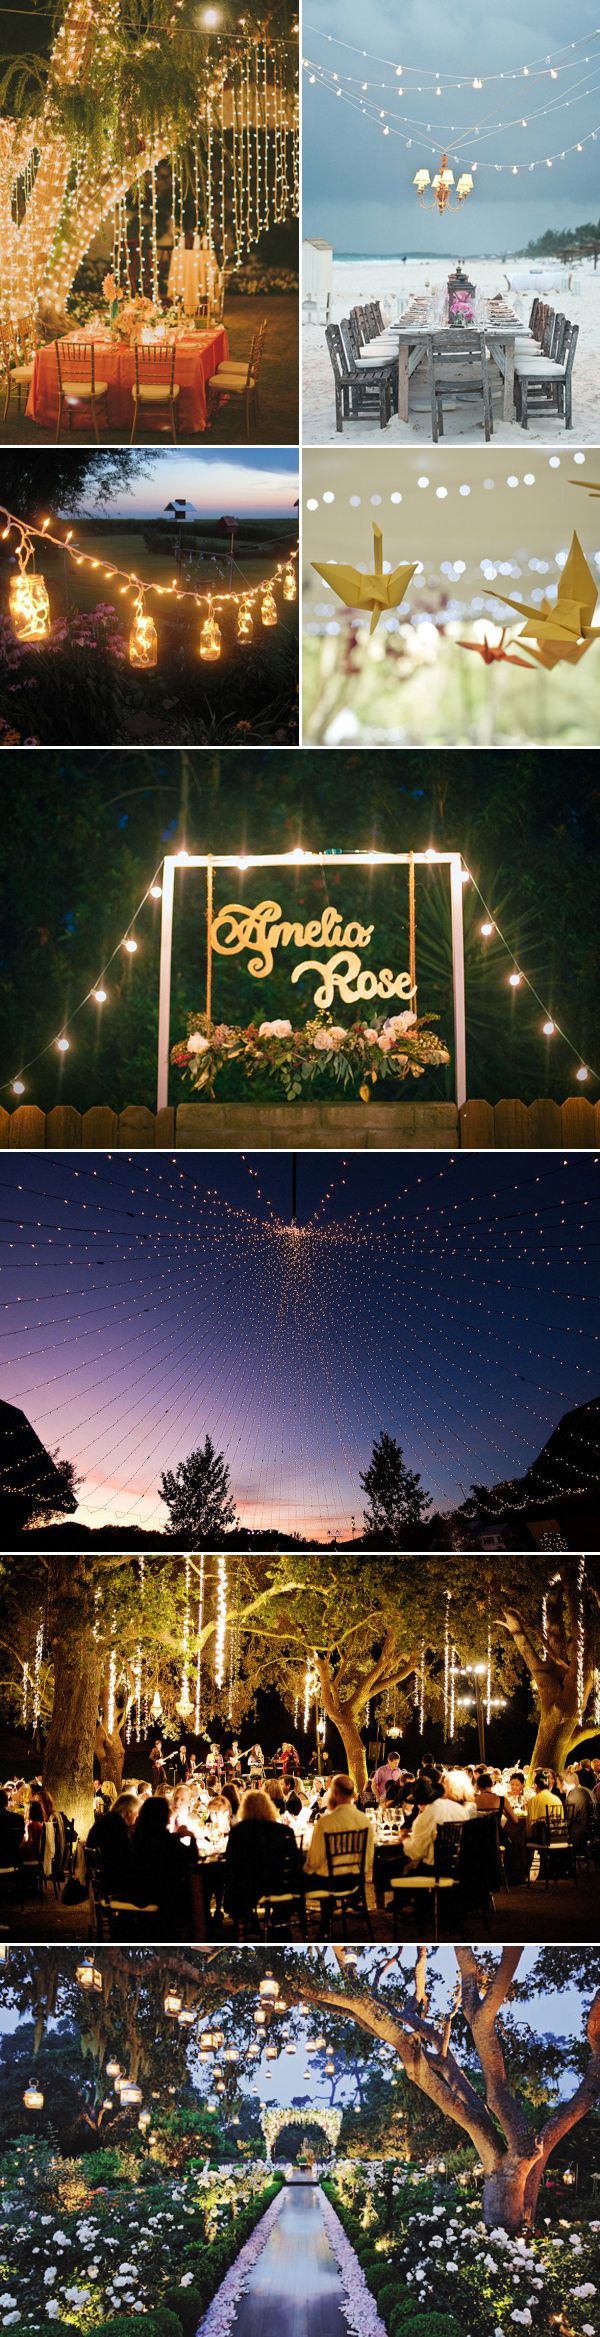 Outdoor Lighting Decoration Ideas  / http://www.deerpearlflowers.com/39-magical-string-hanging-light-decorations-wedding-backdrop/